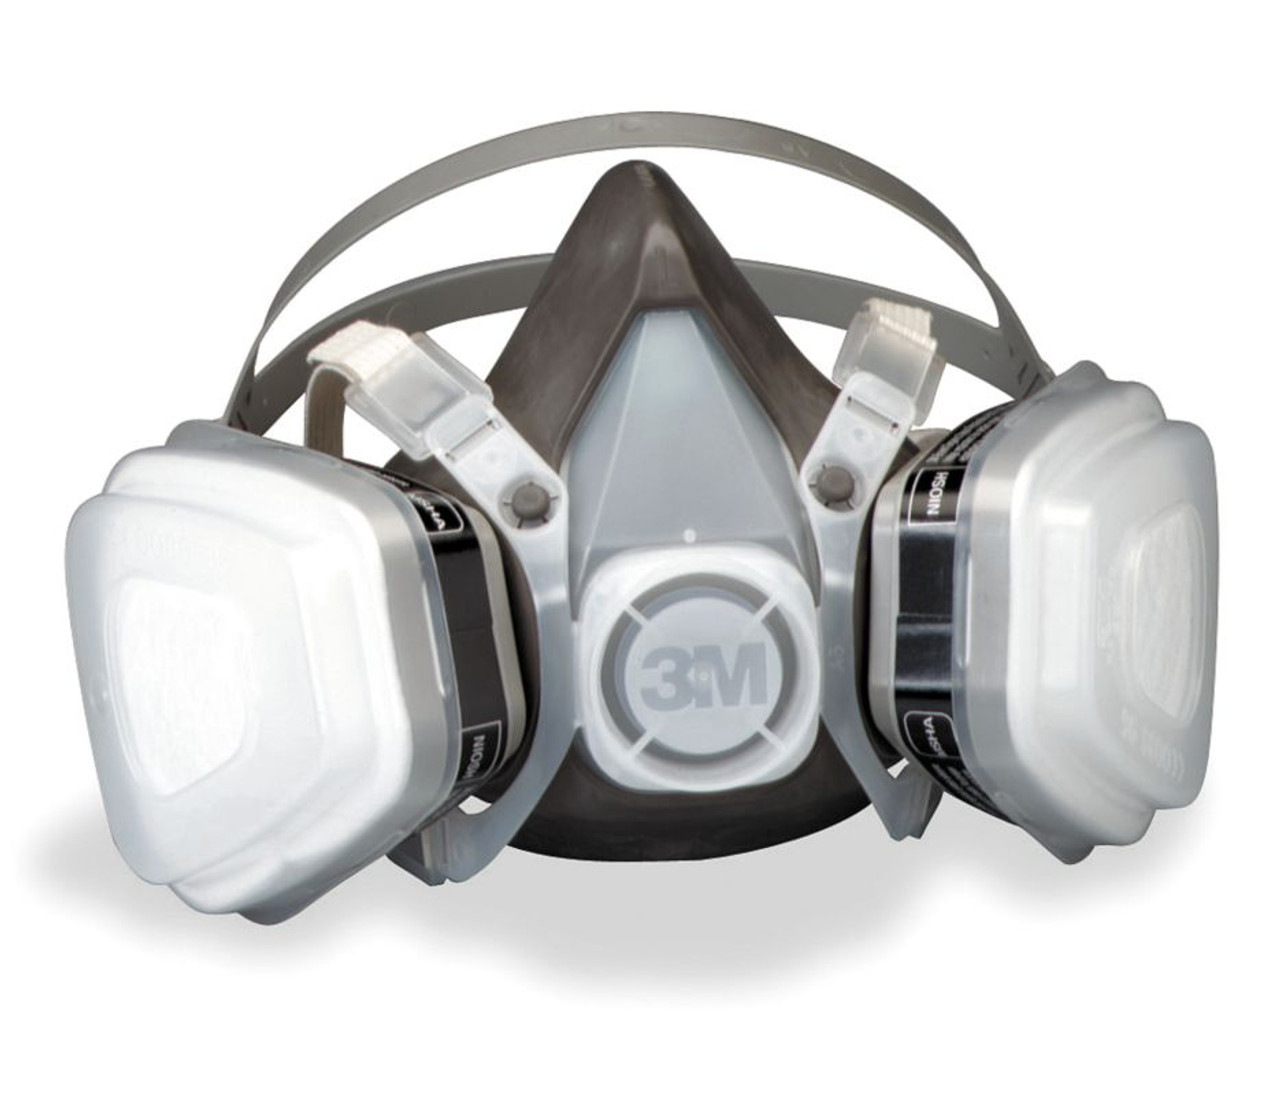 3m Half Disposable Respirator Series Assembly 5000 Facepiece 52p71